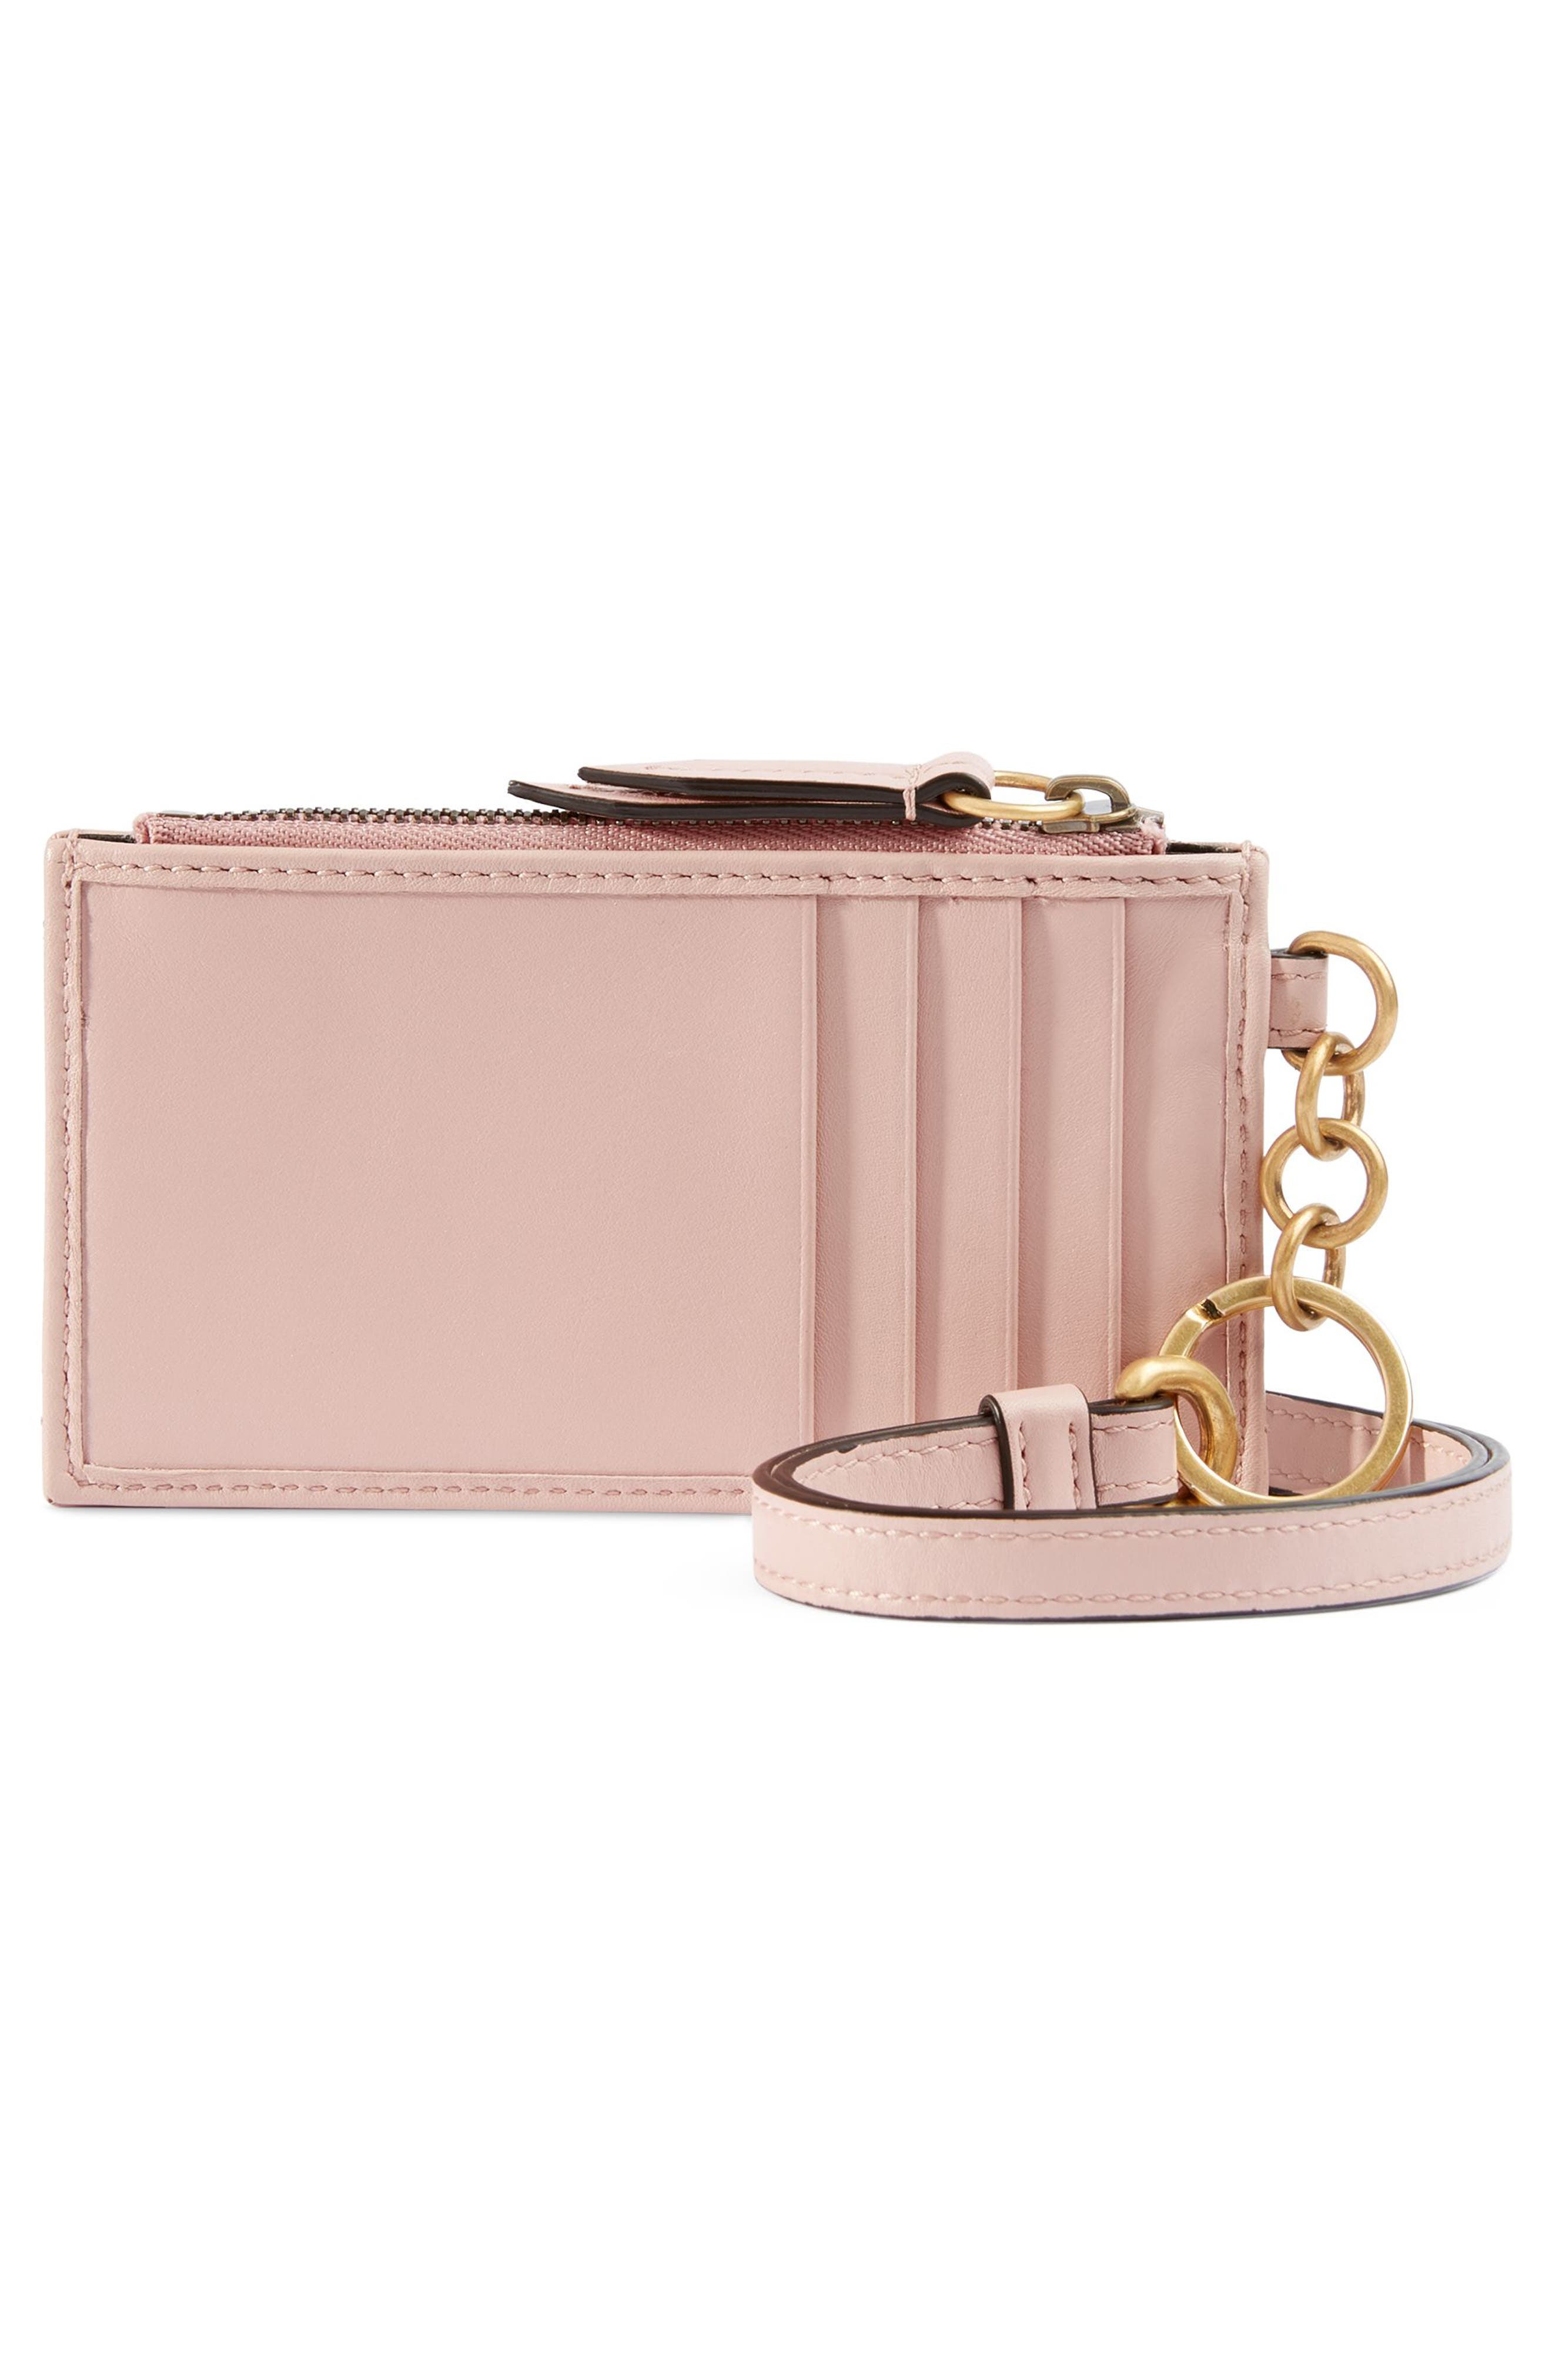 GUCCI, Marmont 2.0 Leather Card Case, Alternate thumbnail 3, color, PERFECT PINK